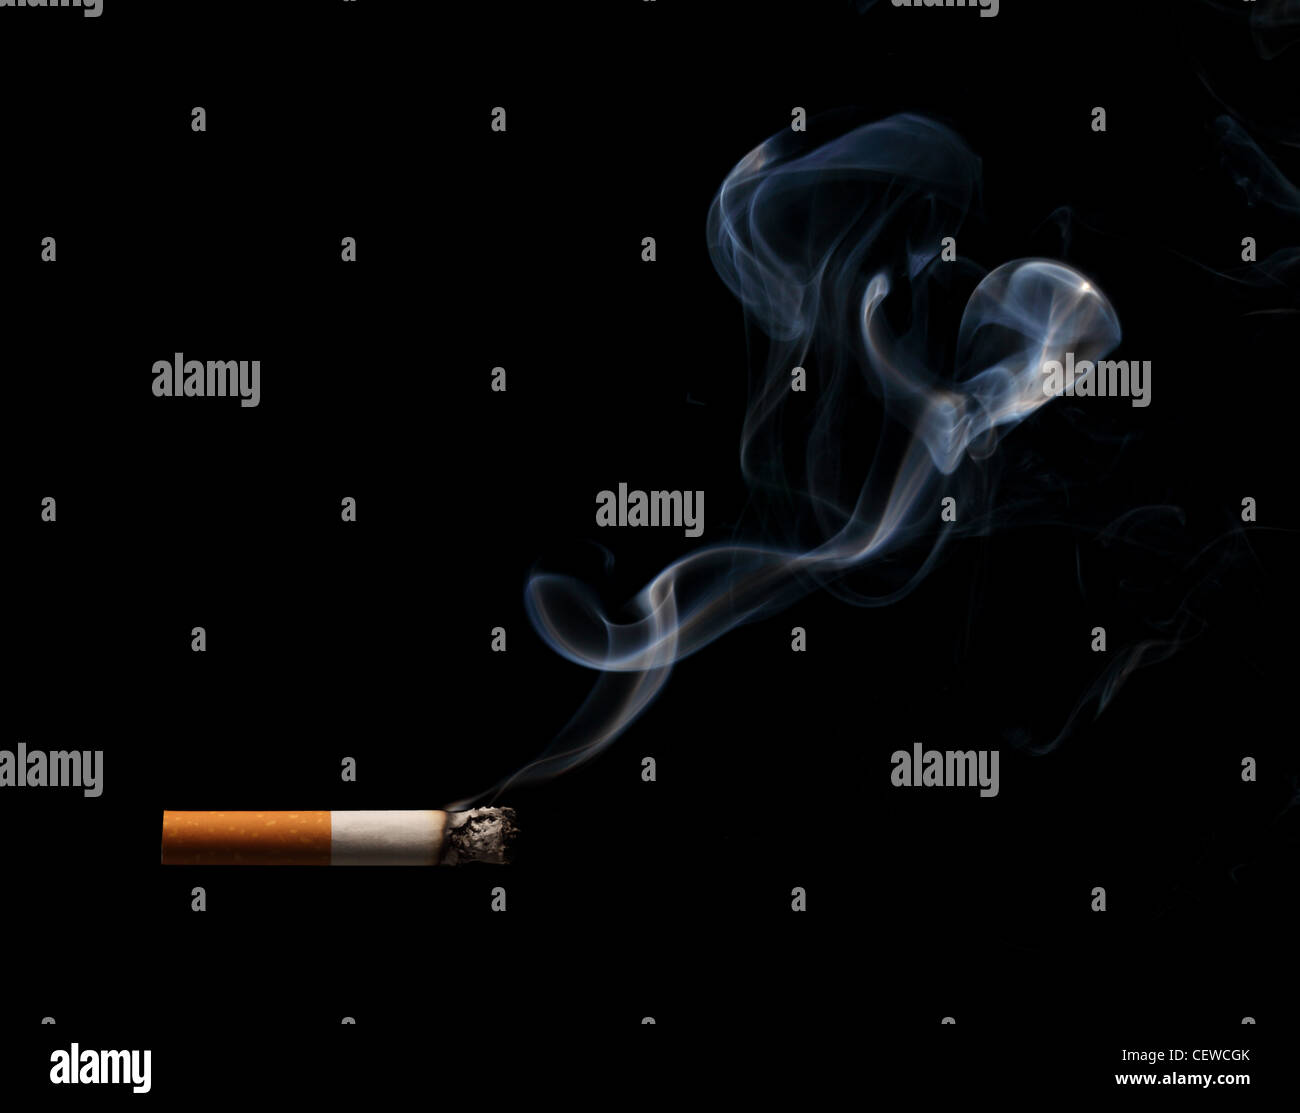 A burning and smoking cigarette on a black background - Stock Image